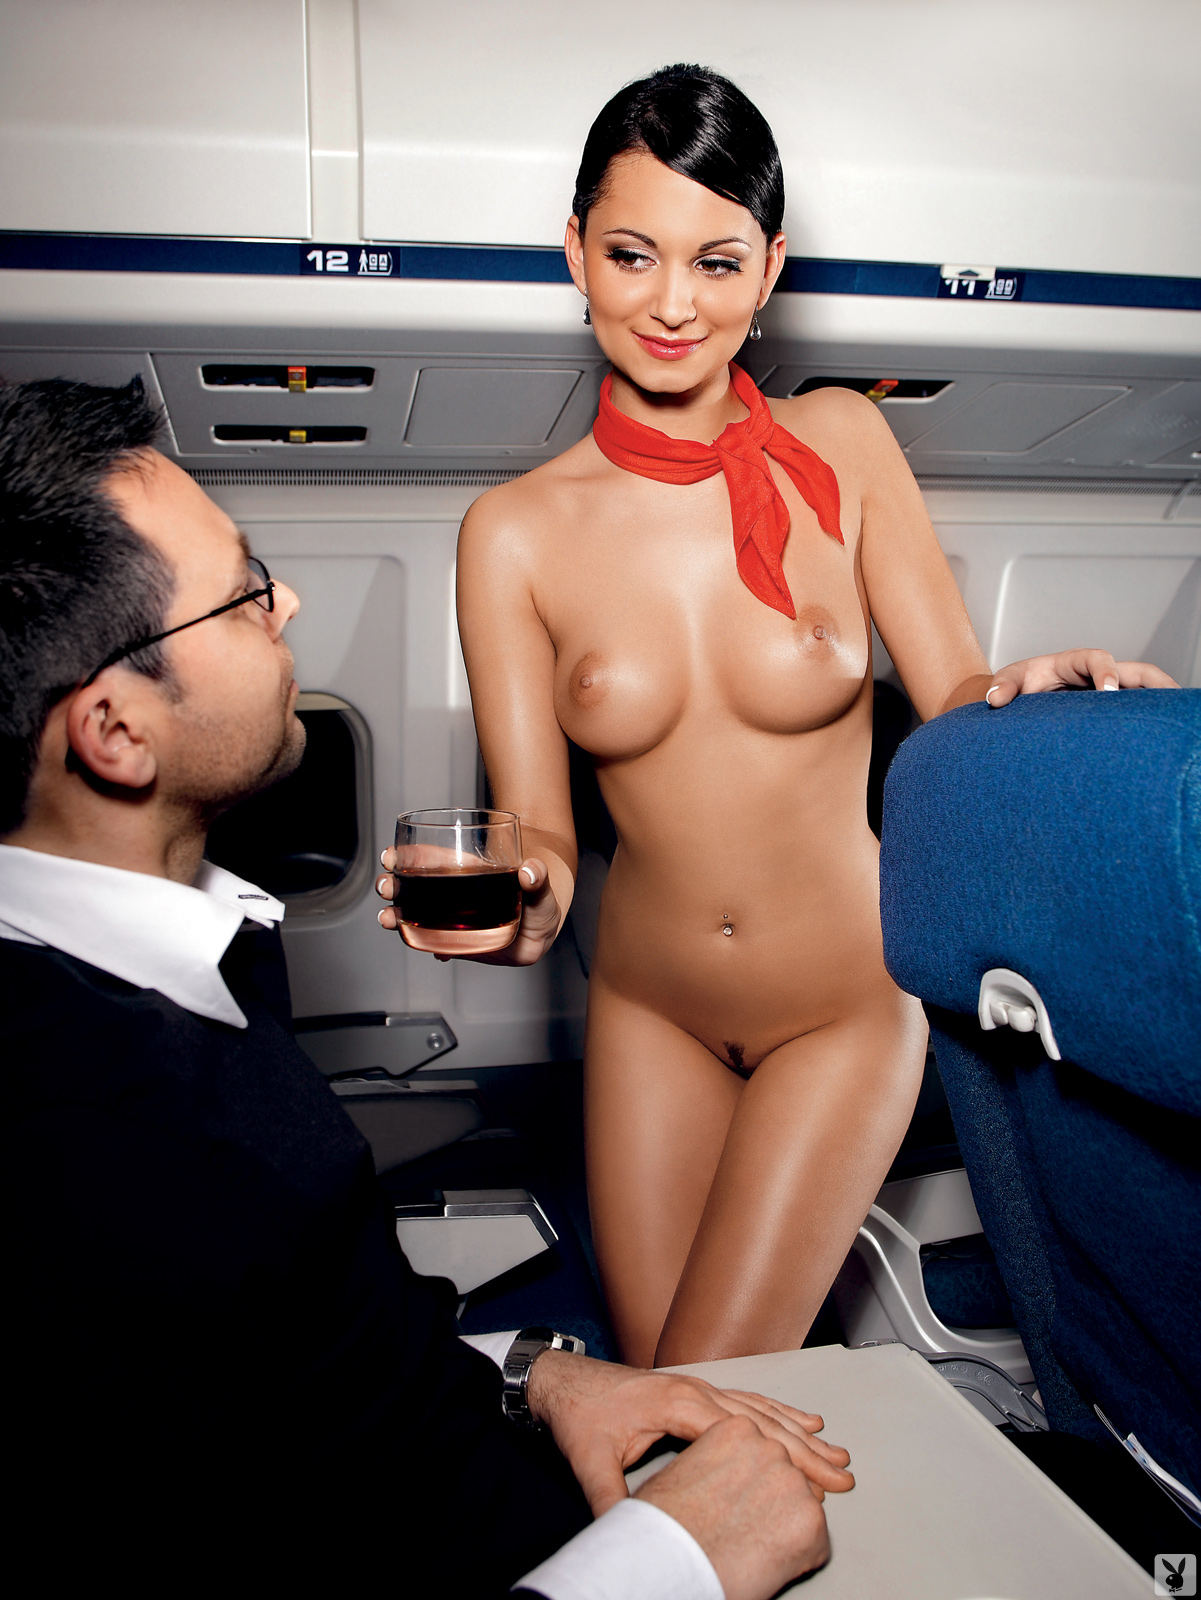 Free Air-hostess Porn Pics and Air-hostess Pictures - SEX